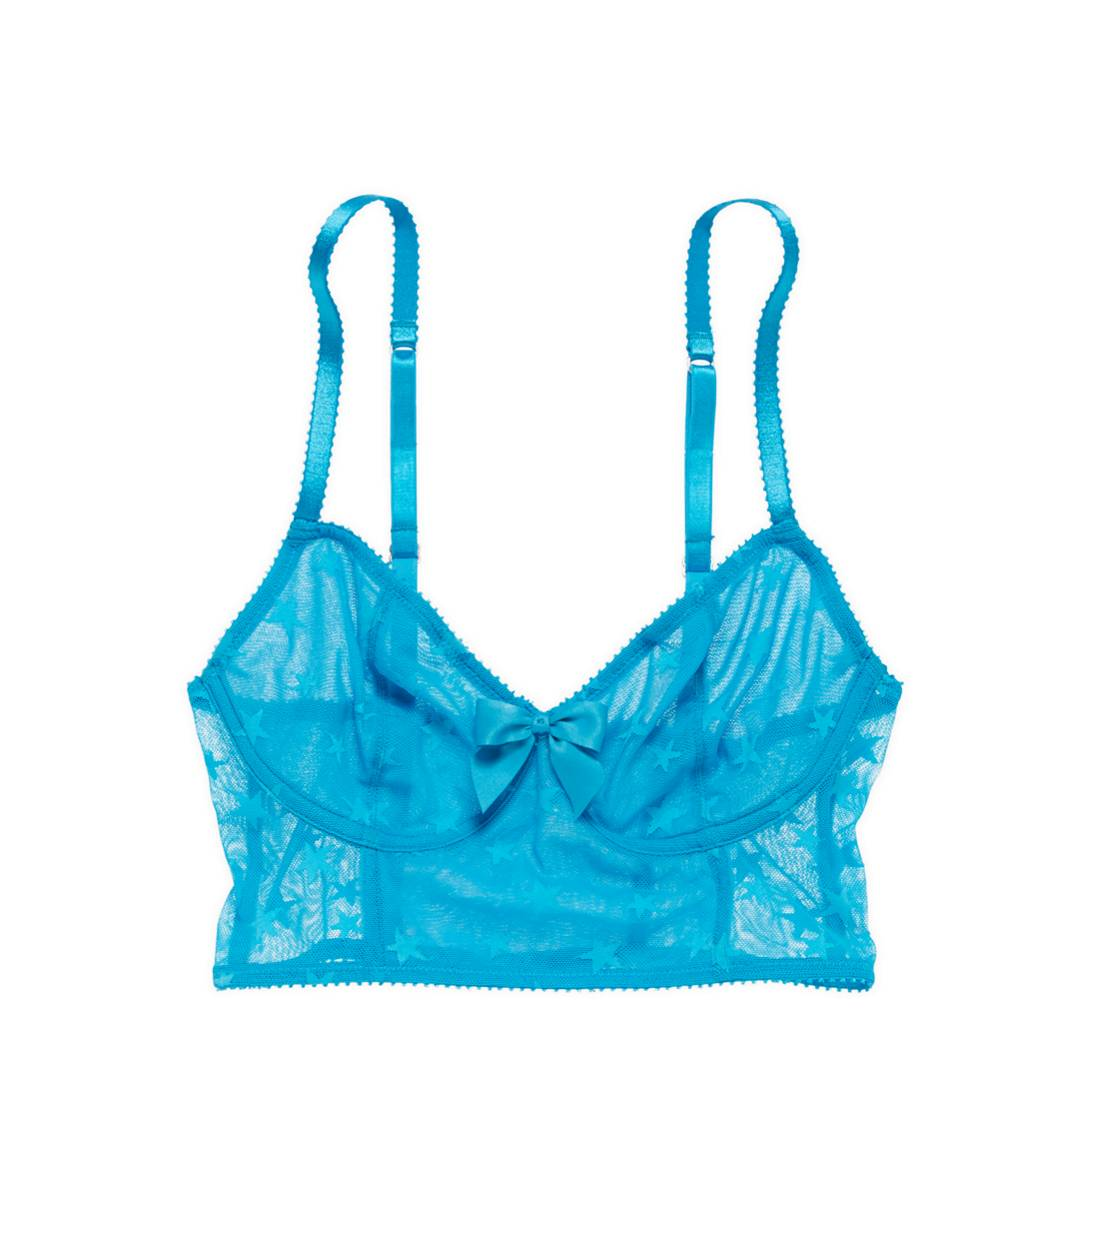 Basin Blue Aerie Star Collection Long Bralette